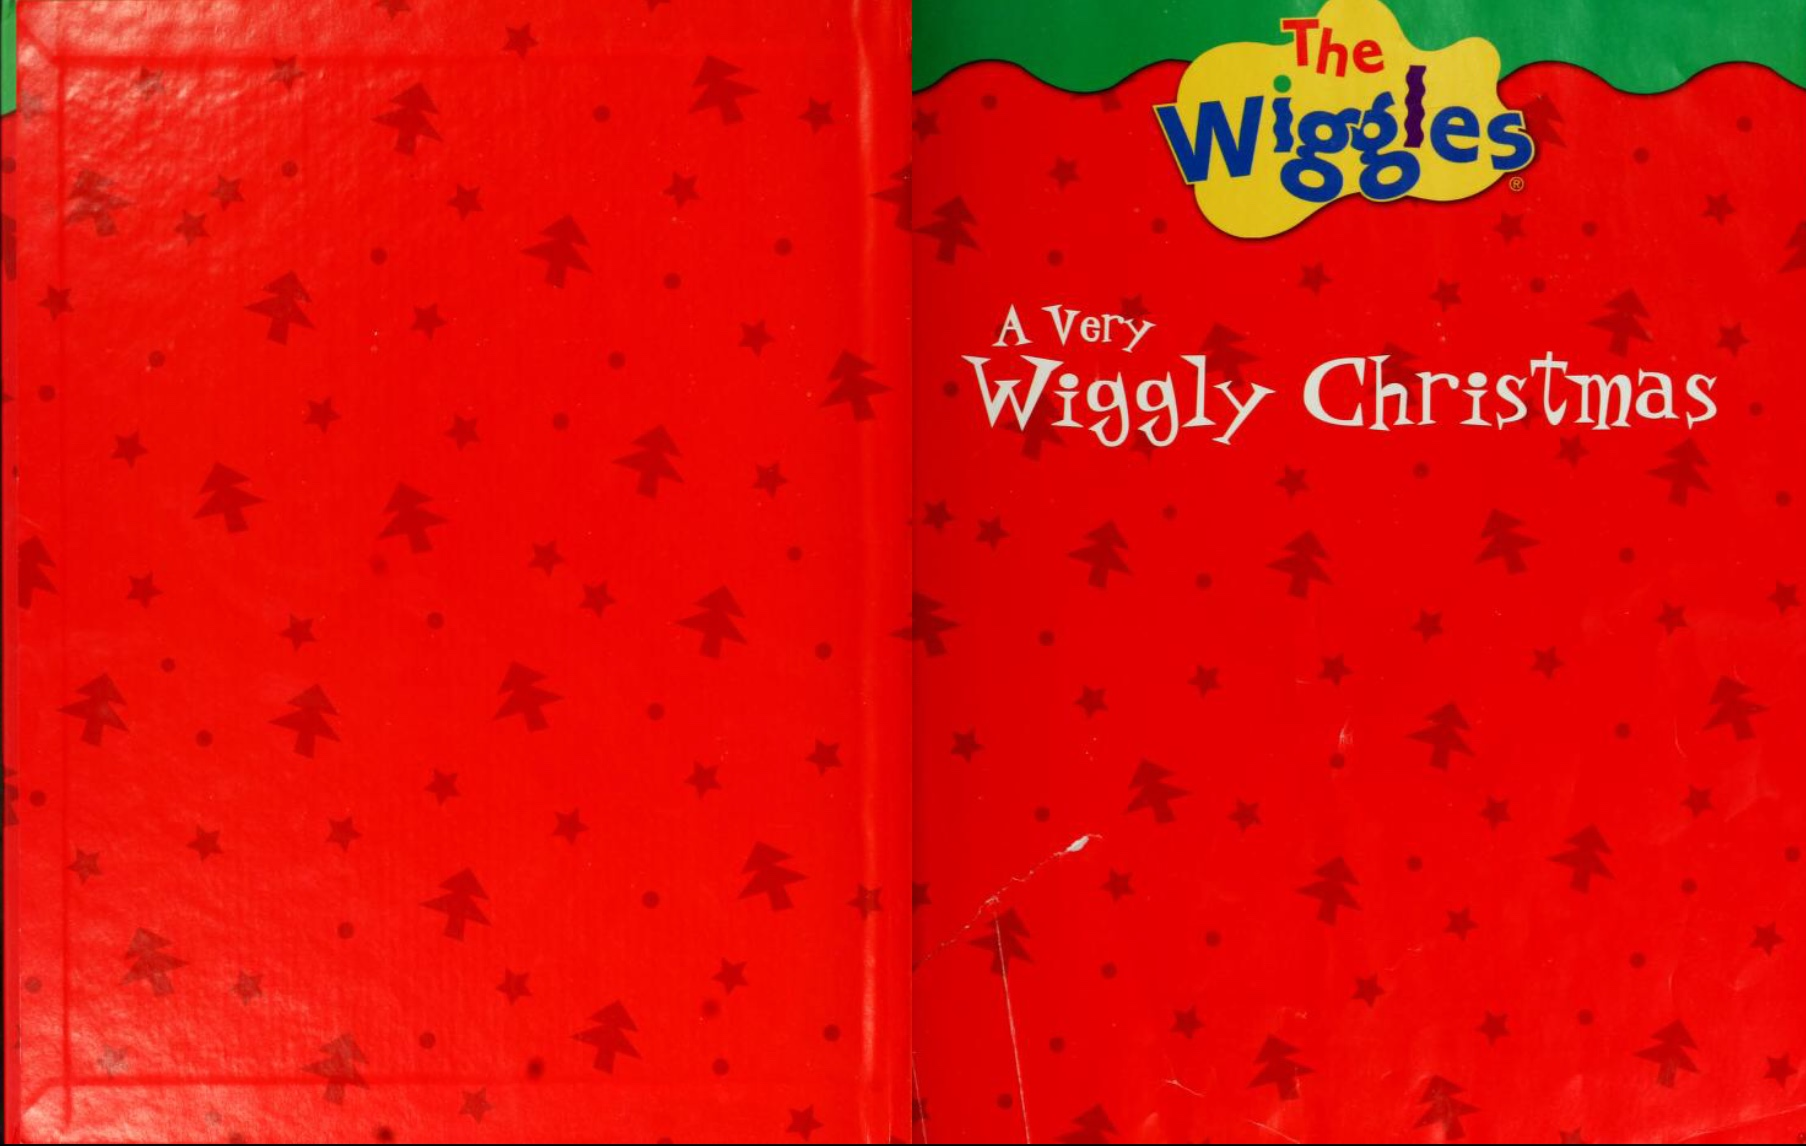 A Very Wiggly Christmas